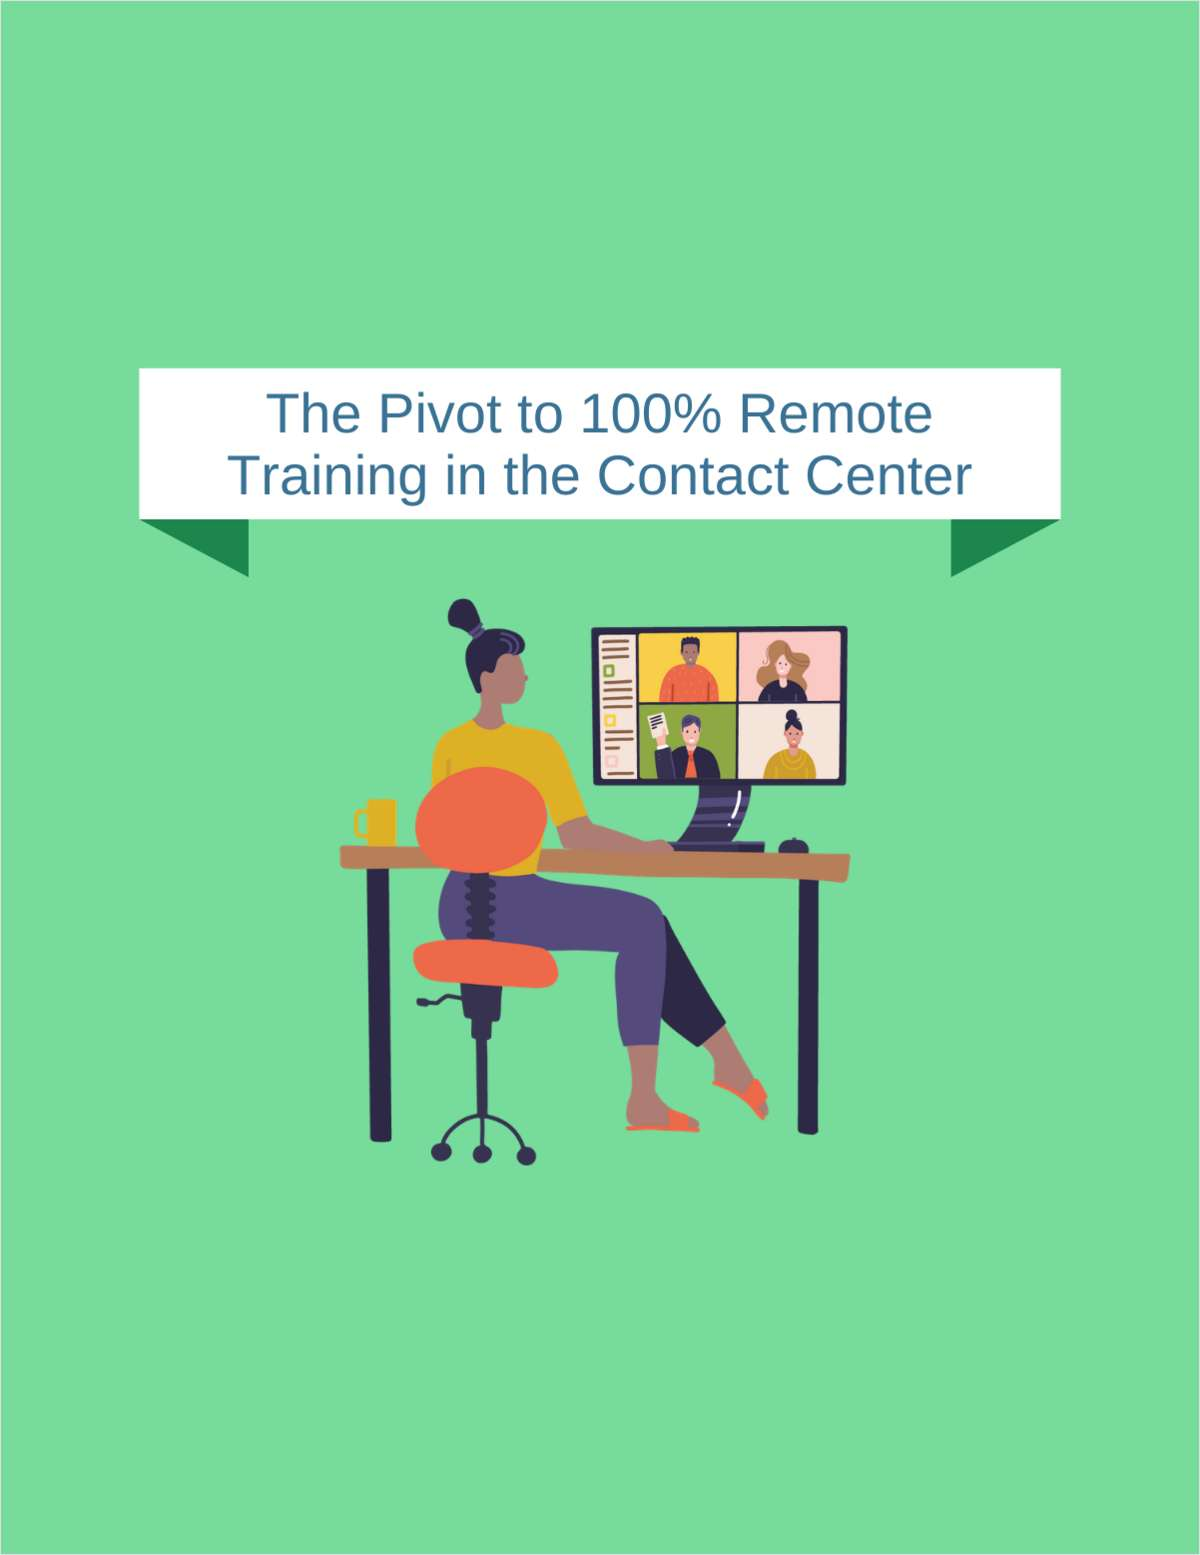 The Pivot to 100% Remote Training in the Contact Center